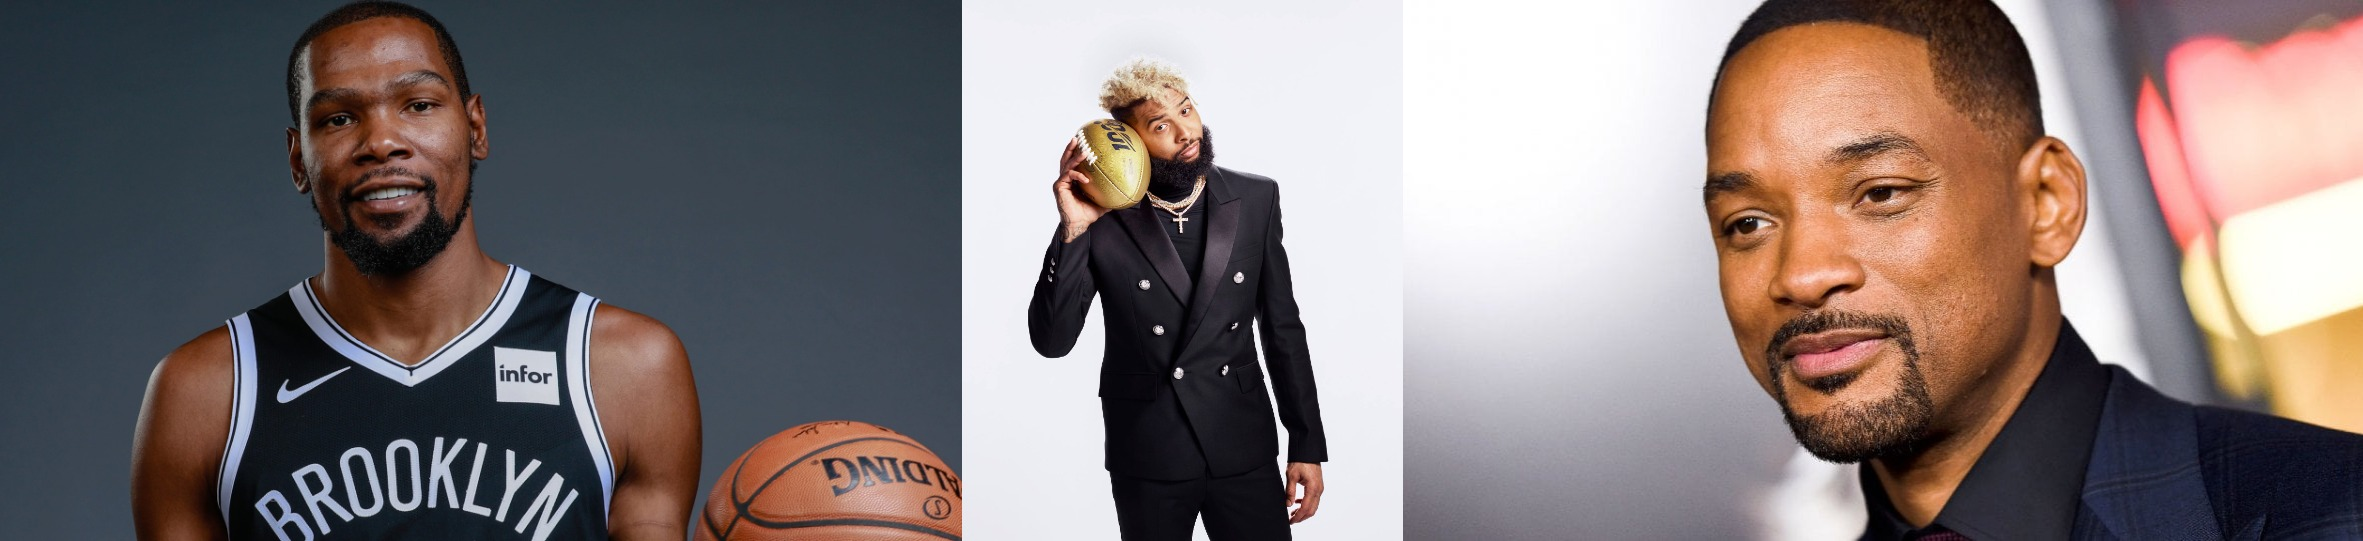 Titan Raises M Series B With Participation From Kevin Durant, Odell Beckham Jr. and Will Smith